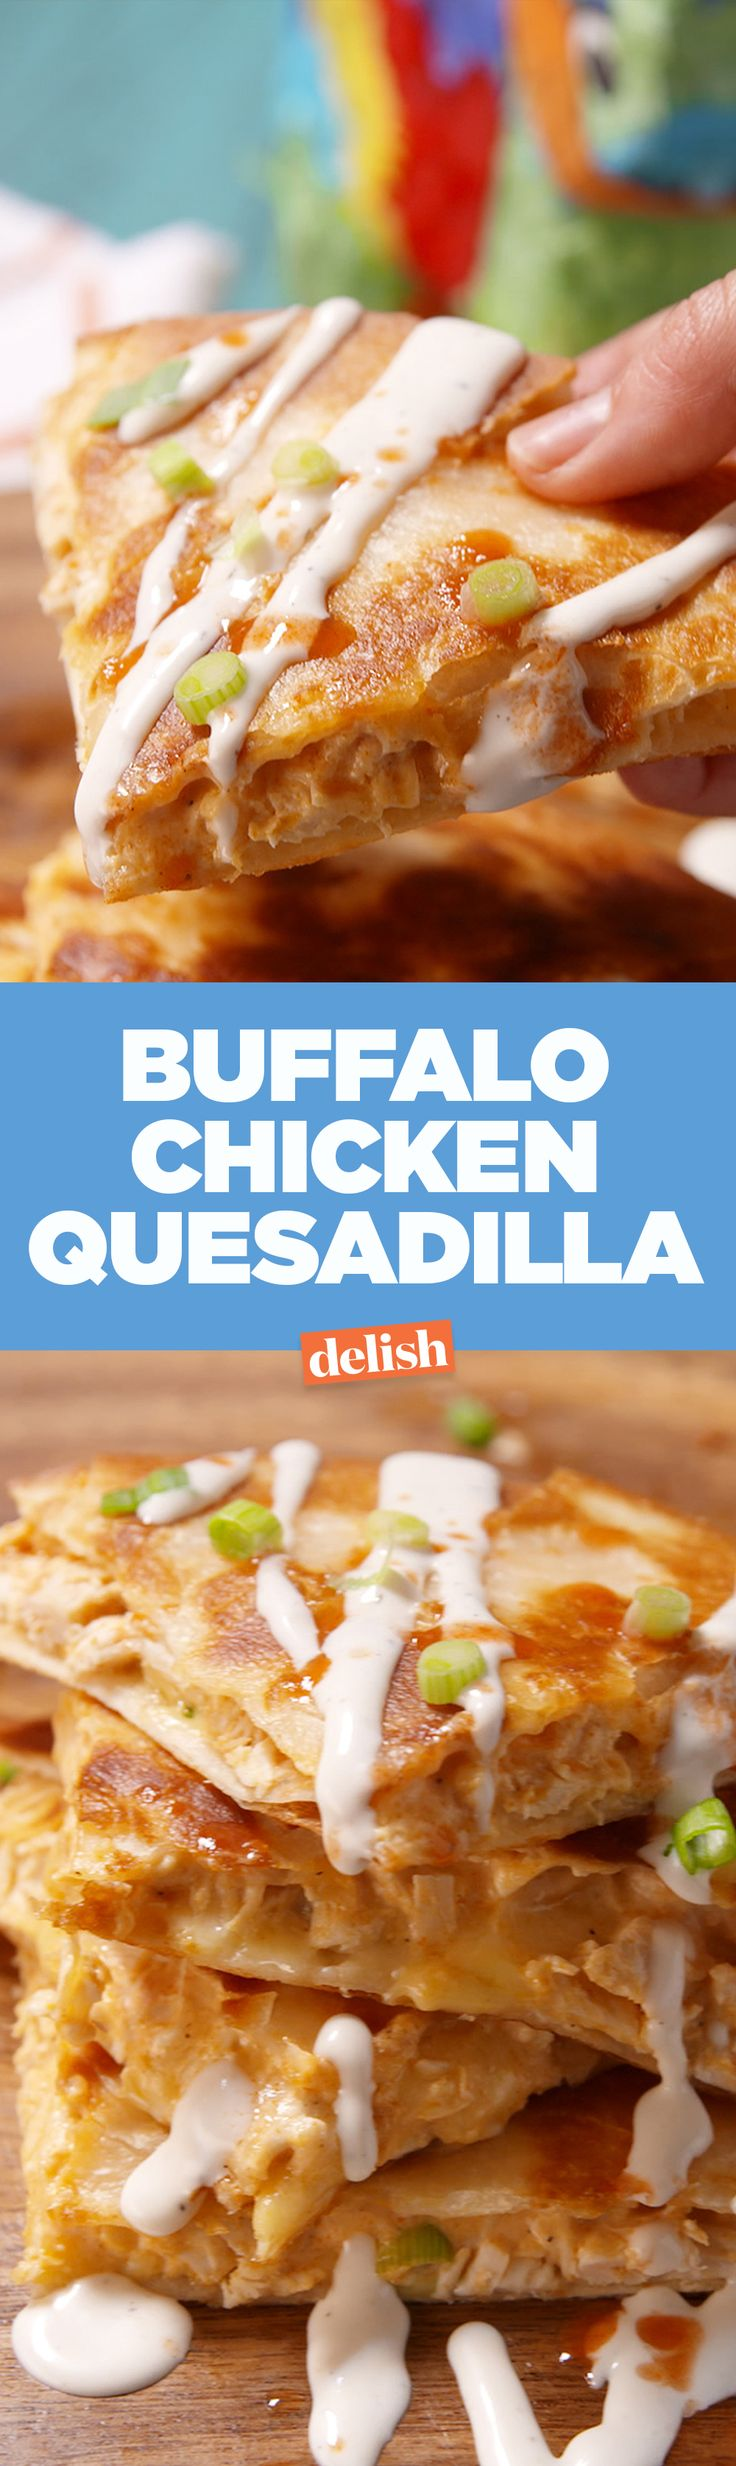 You need a Buffalo Chicken Quesadilla in your life right now. Get the recipe on Delish.com.